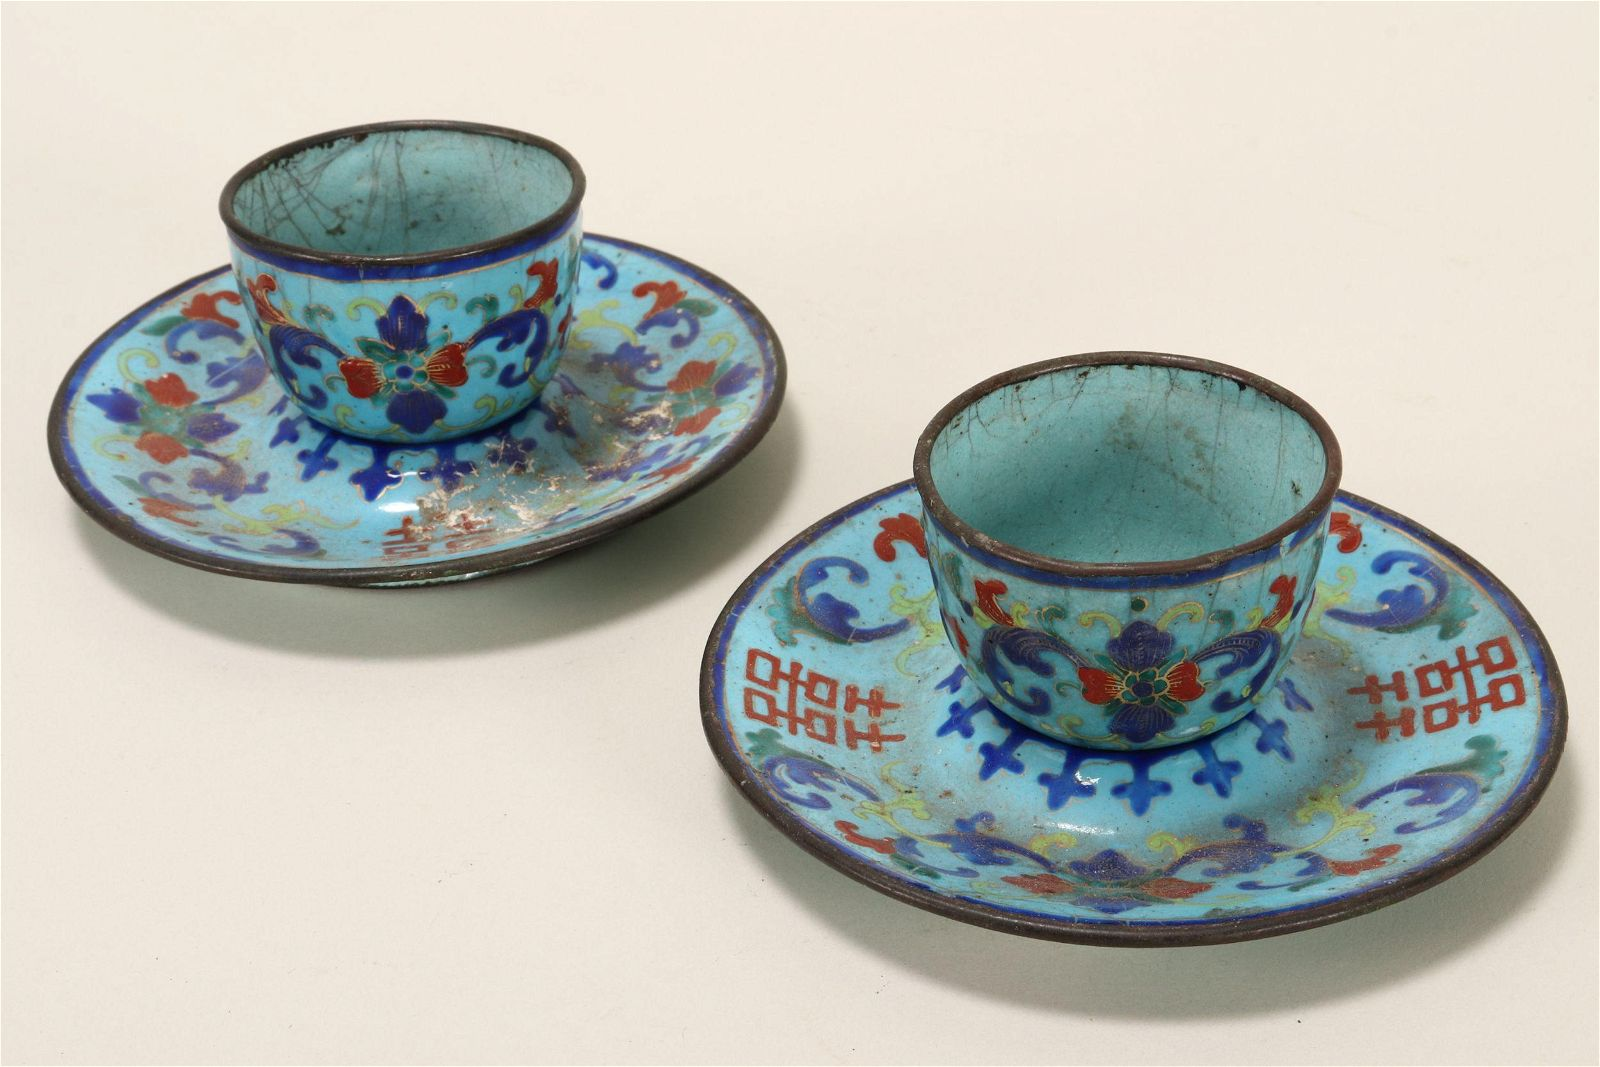 Pair of Chinese Miniature Enamel Bowls & Saucers,